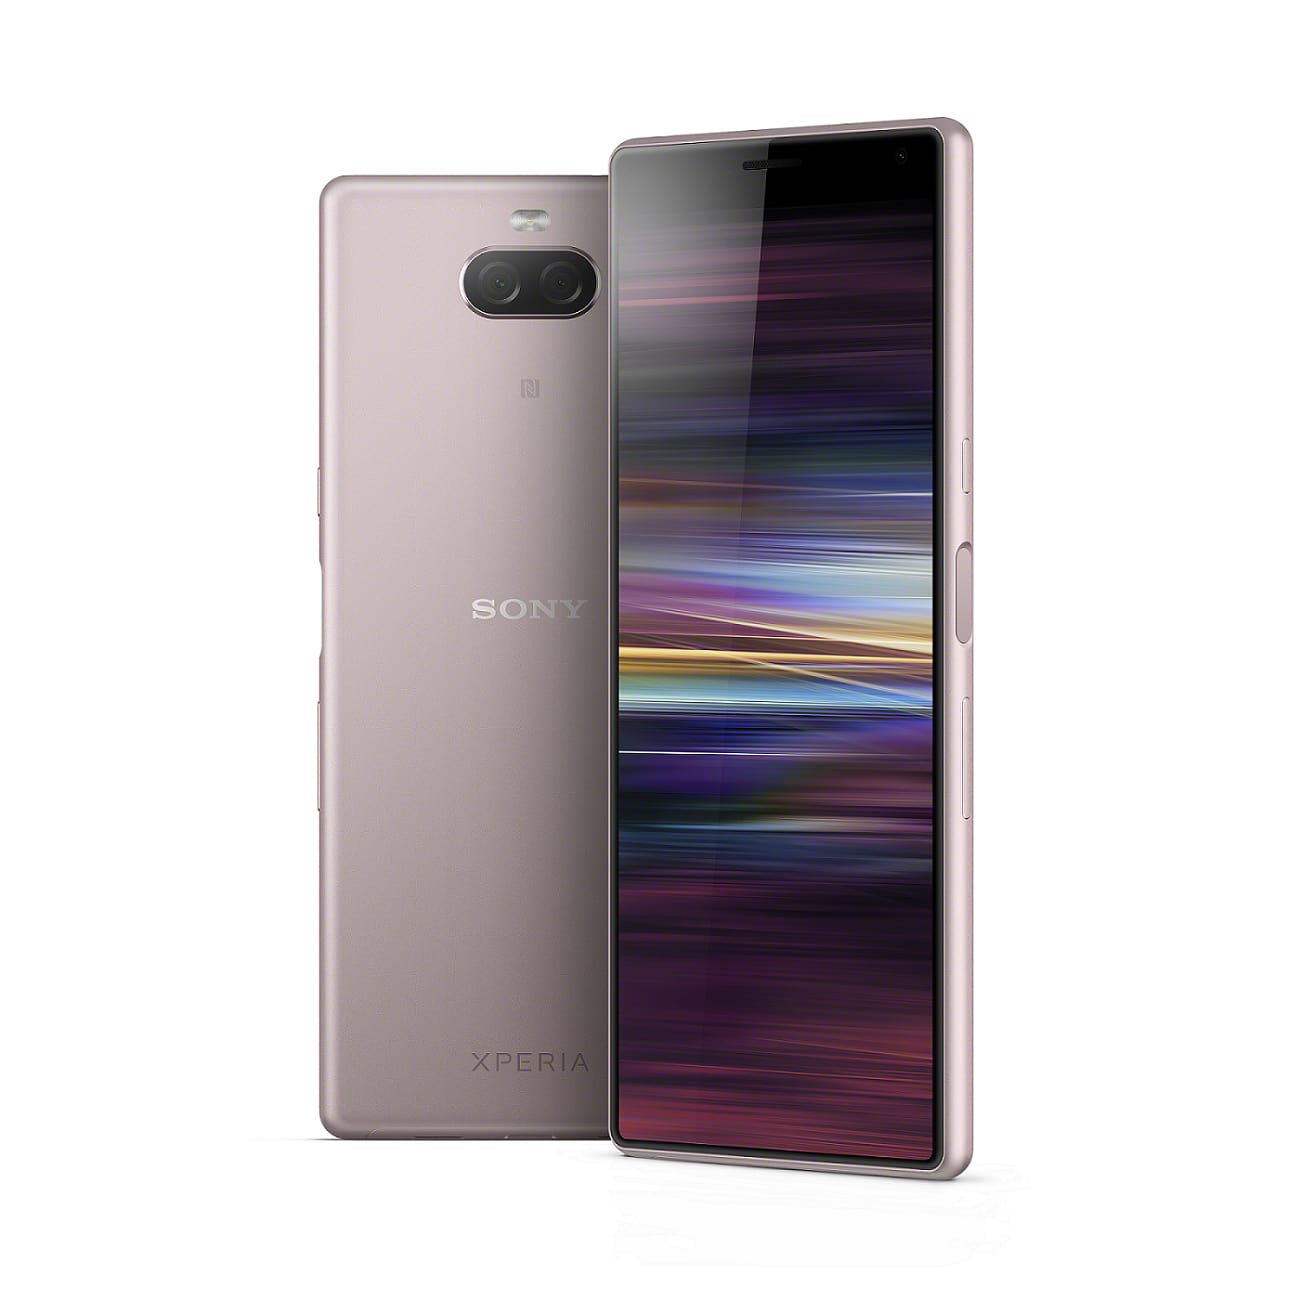 "Sony Xperia 10 Smartphone 15,2cm/6,0"" Android 13+5+8MP 64GB Dual-SIM Pink für 289,00 Euro"